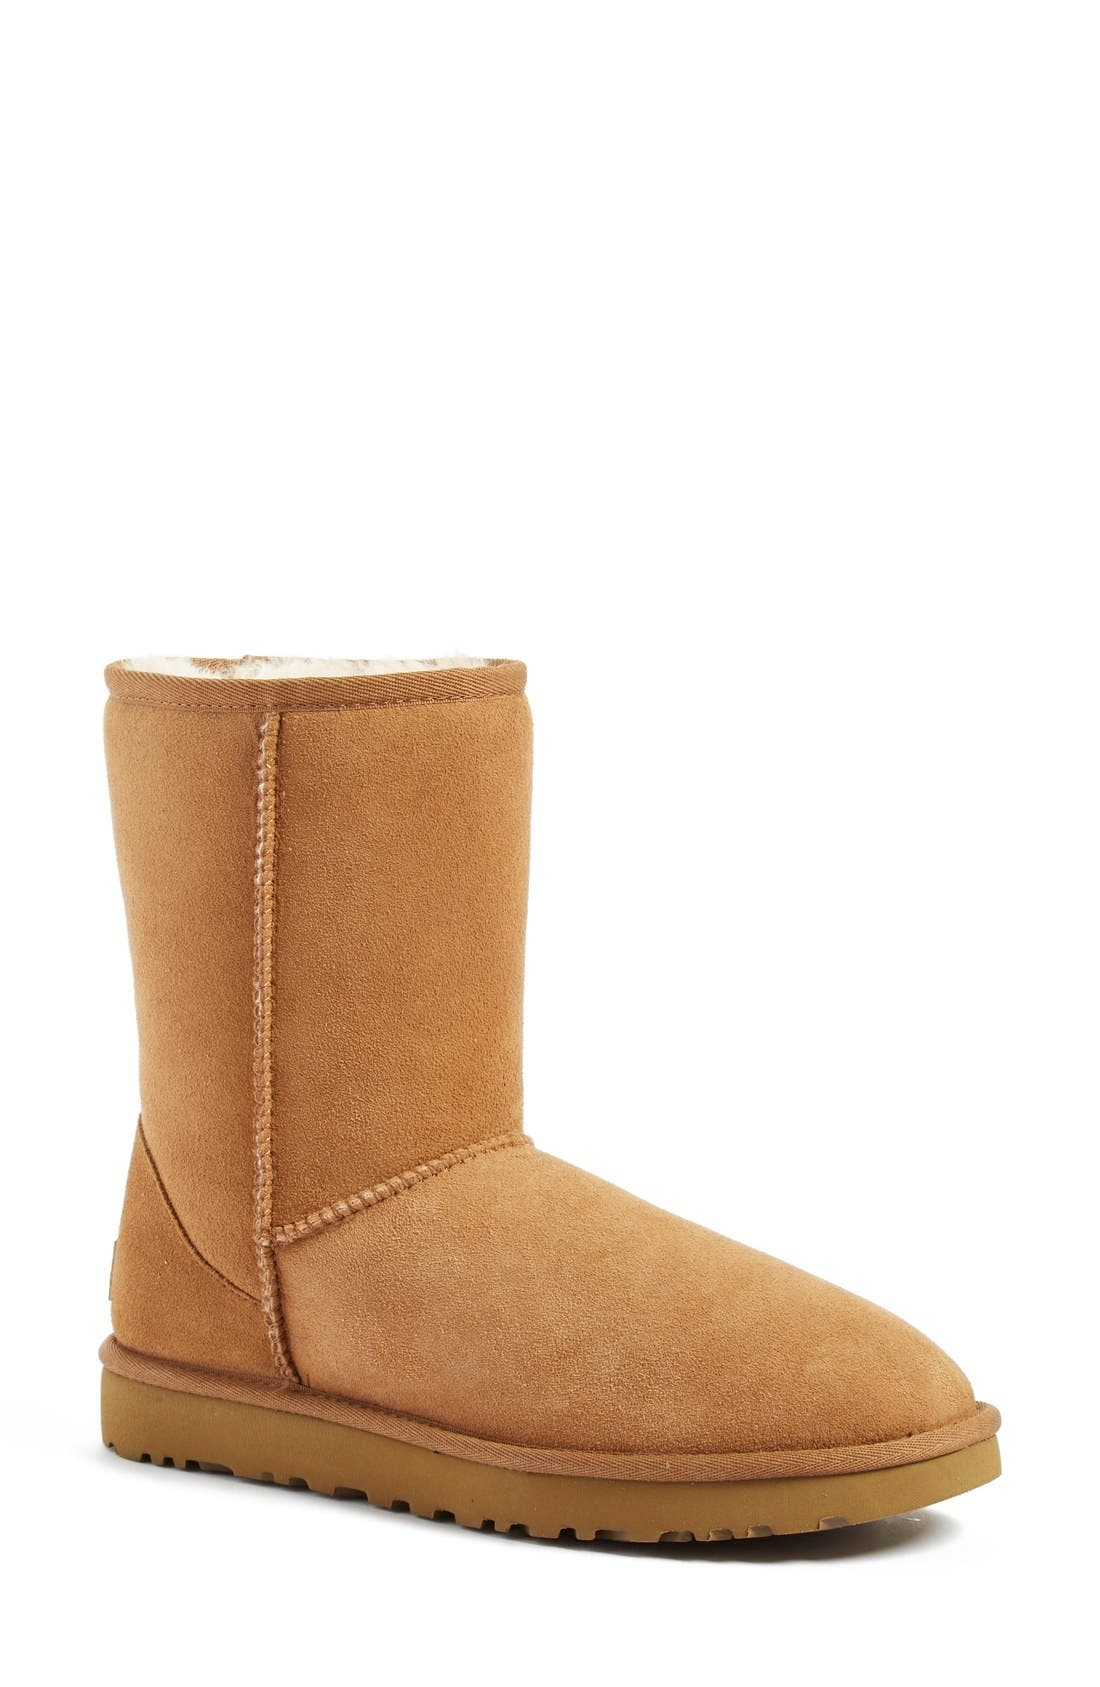 Main Image - UGG® 'Classic II' Genuine Shearling Lined Short Boot (Women)